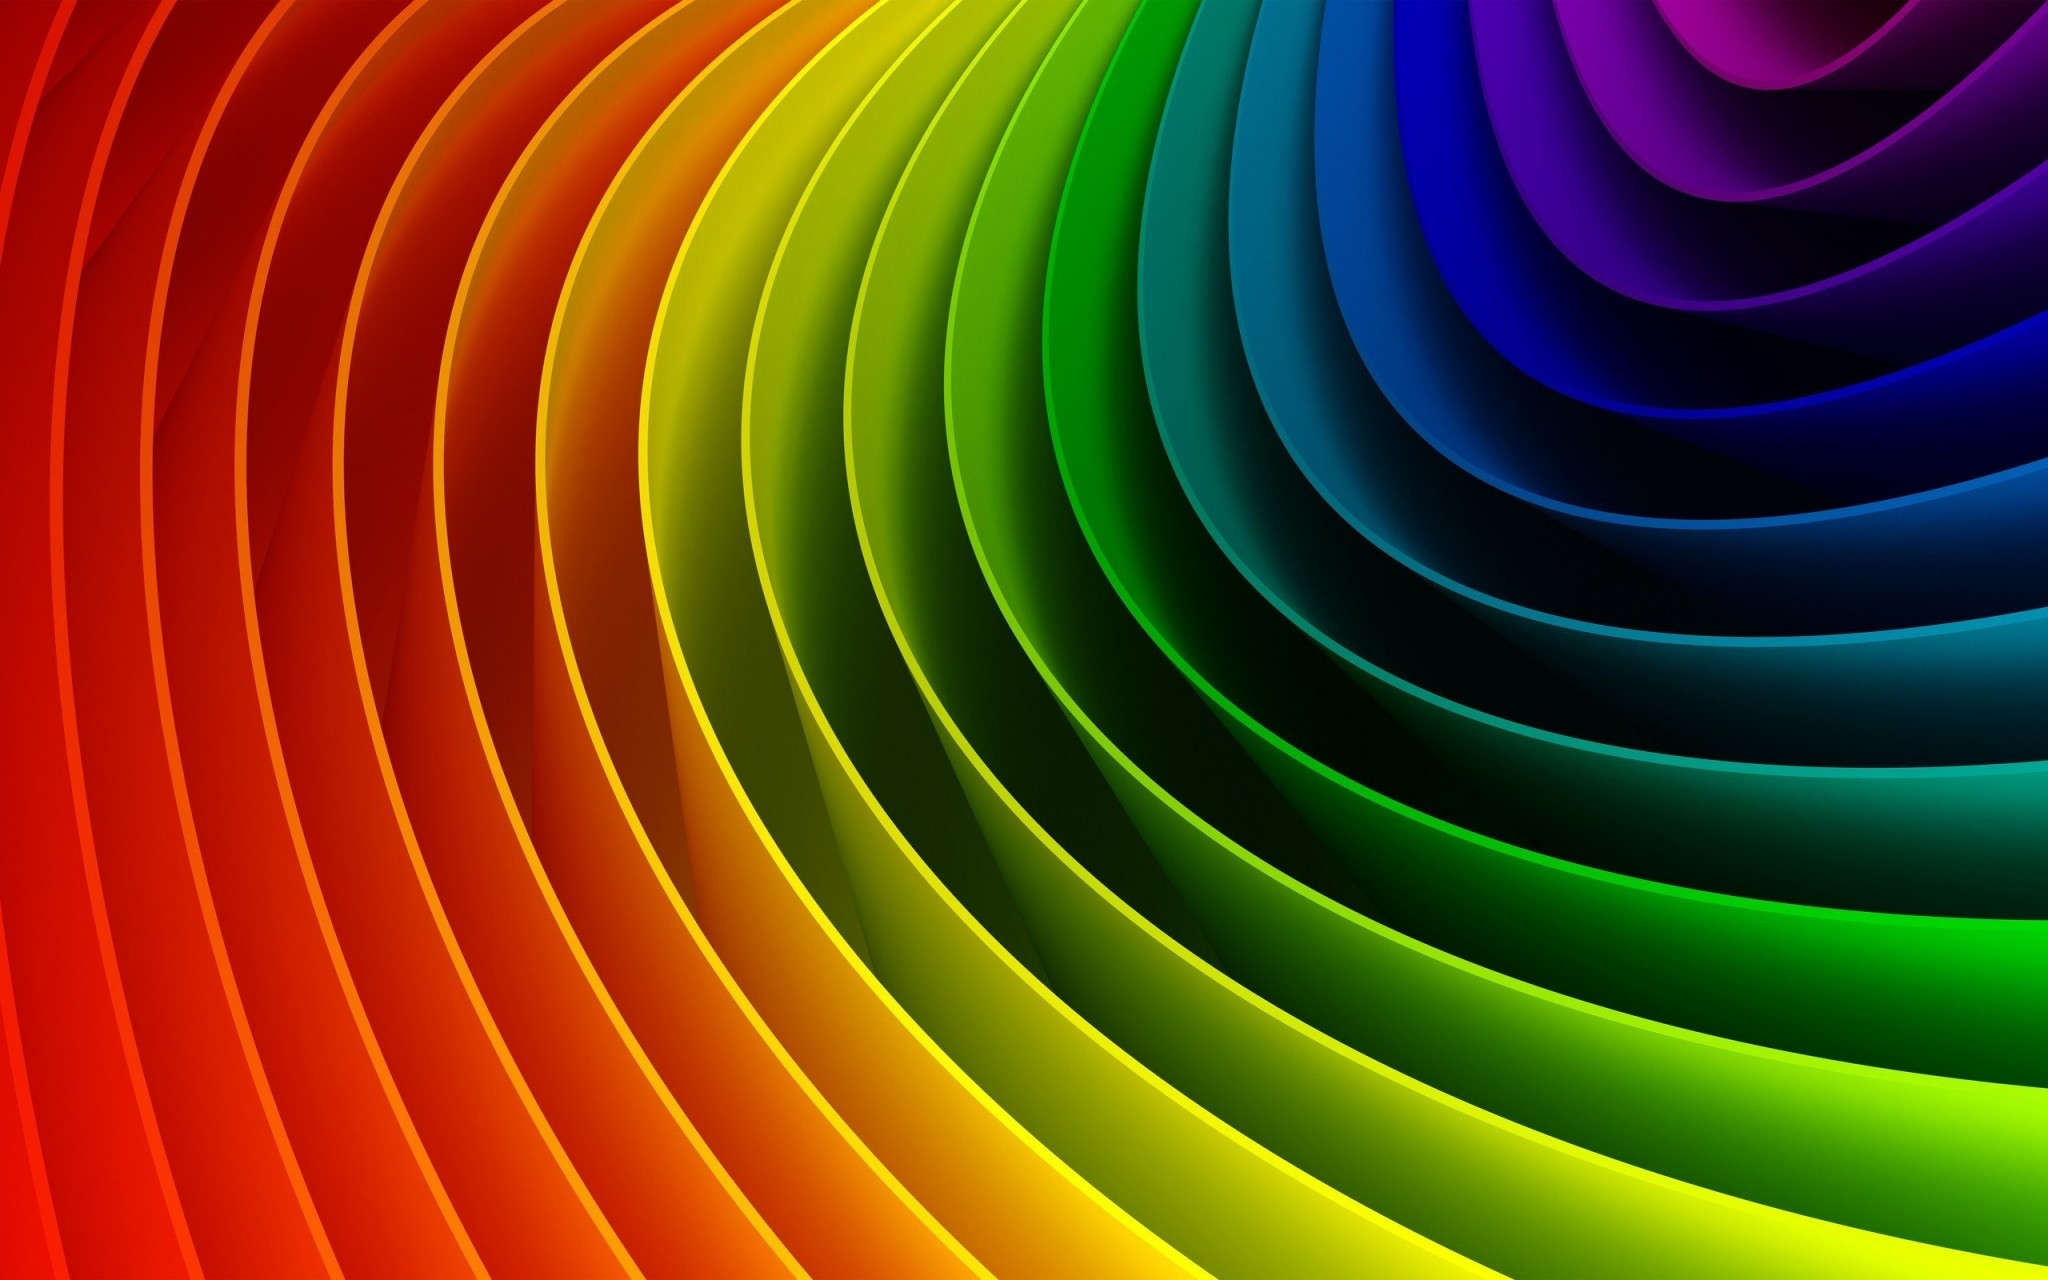 Rainbow color transition ppt background #3611